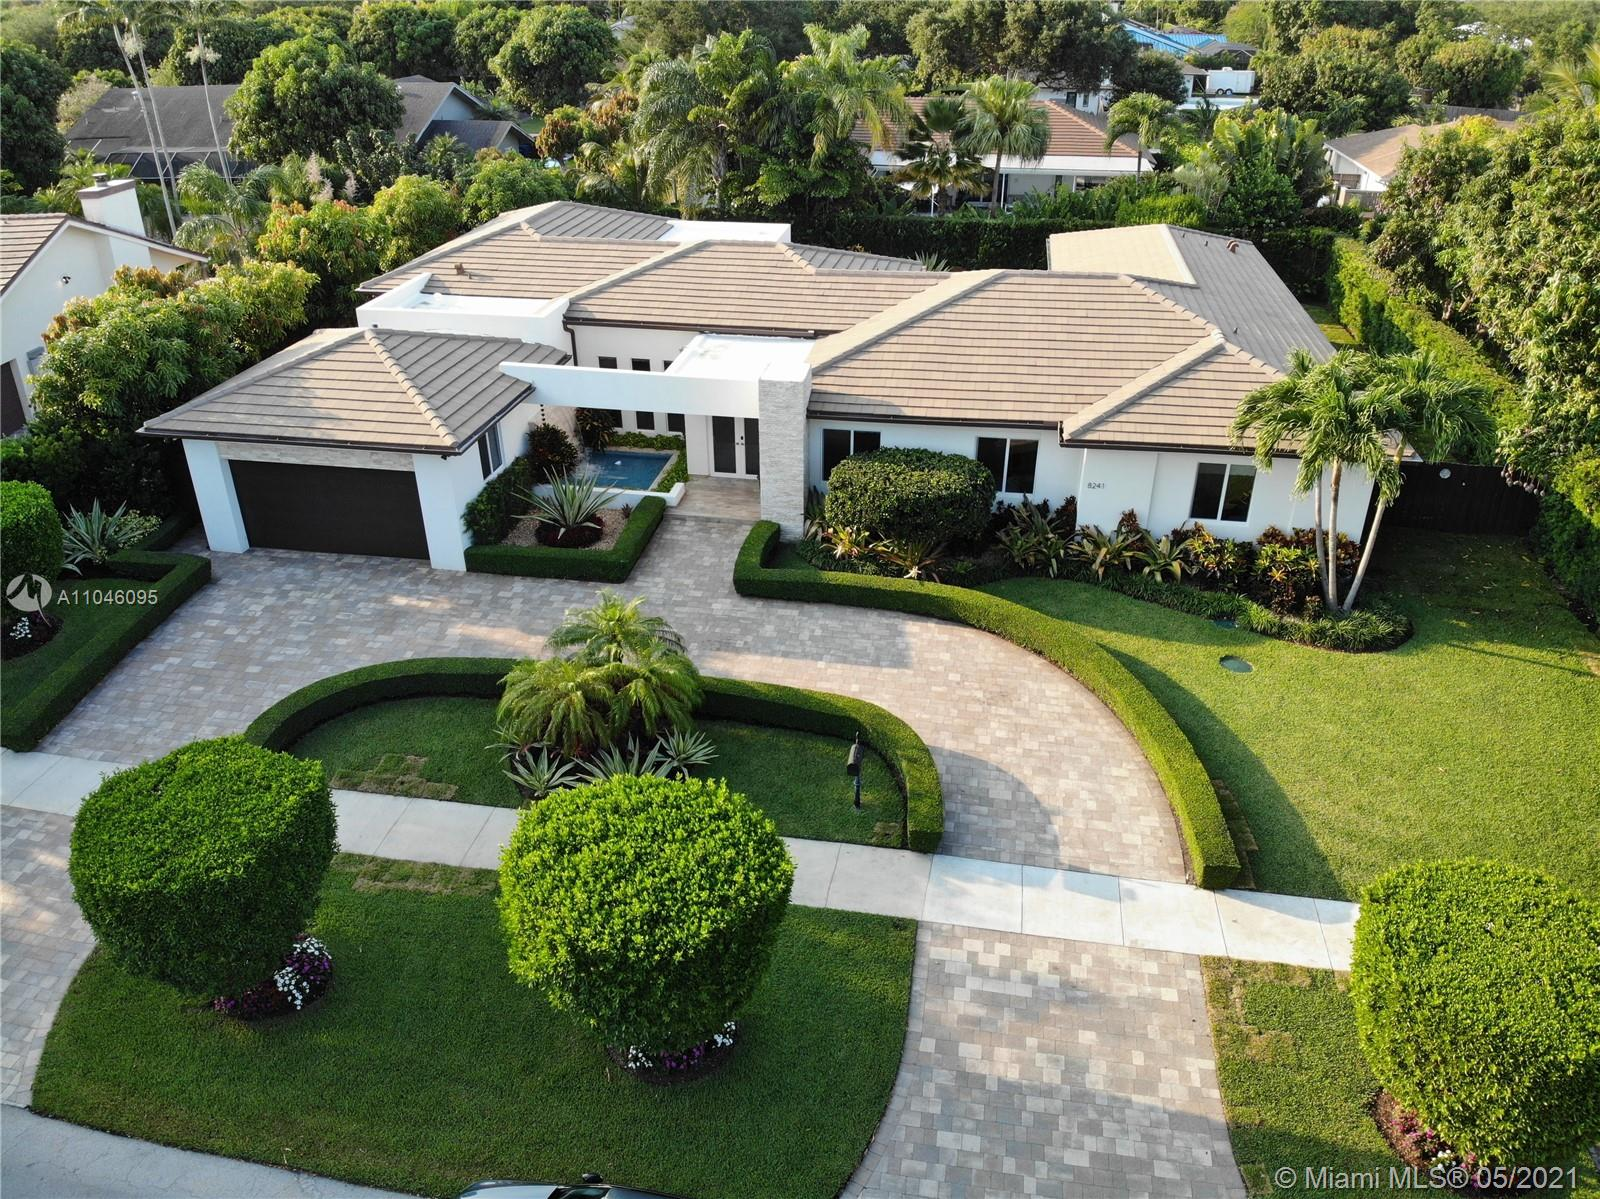 """A masterpiece one-story contemporary luxury mansion in Palmetto Bay. Designed for modern living. This 4,184 SF home features an open-concept floor plan w/12 FT/10FT high ceilings, seamless indoor/outdoor living spaces, chef's kitchen w/ oversized island & top of the line electric/gas/steam Thermador appliances. 120 gallons propane tank to feed the high-end dual fuel Thermador range and the LG dryer. The house is fully wired for the best internet connection.  Situated on a fully isolated lot with only one-story homes all around. This 4 bed + 1 bed/office, 3.5 bath retreat has so much to offer: manicured landscaping with Podocarpus trees all around for best appearance and privacy, pool w/ salt-chlorine system, oversized 2-car garage, shades & 32"""" X32"""" porcelain tiles... continued below!"""